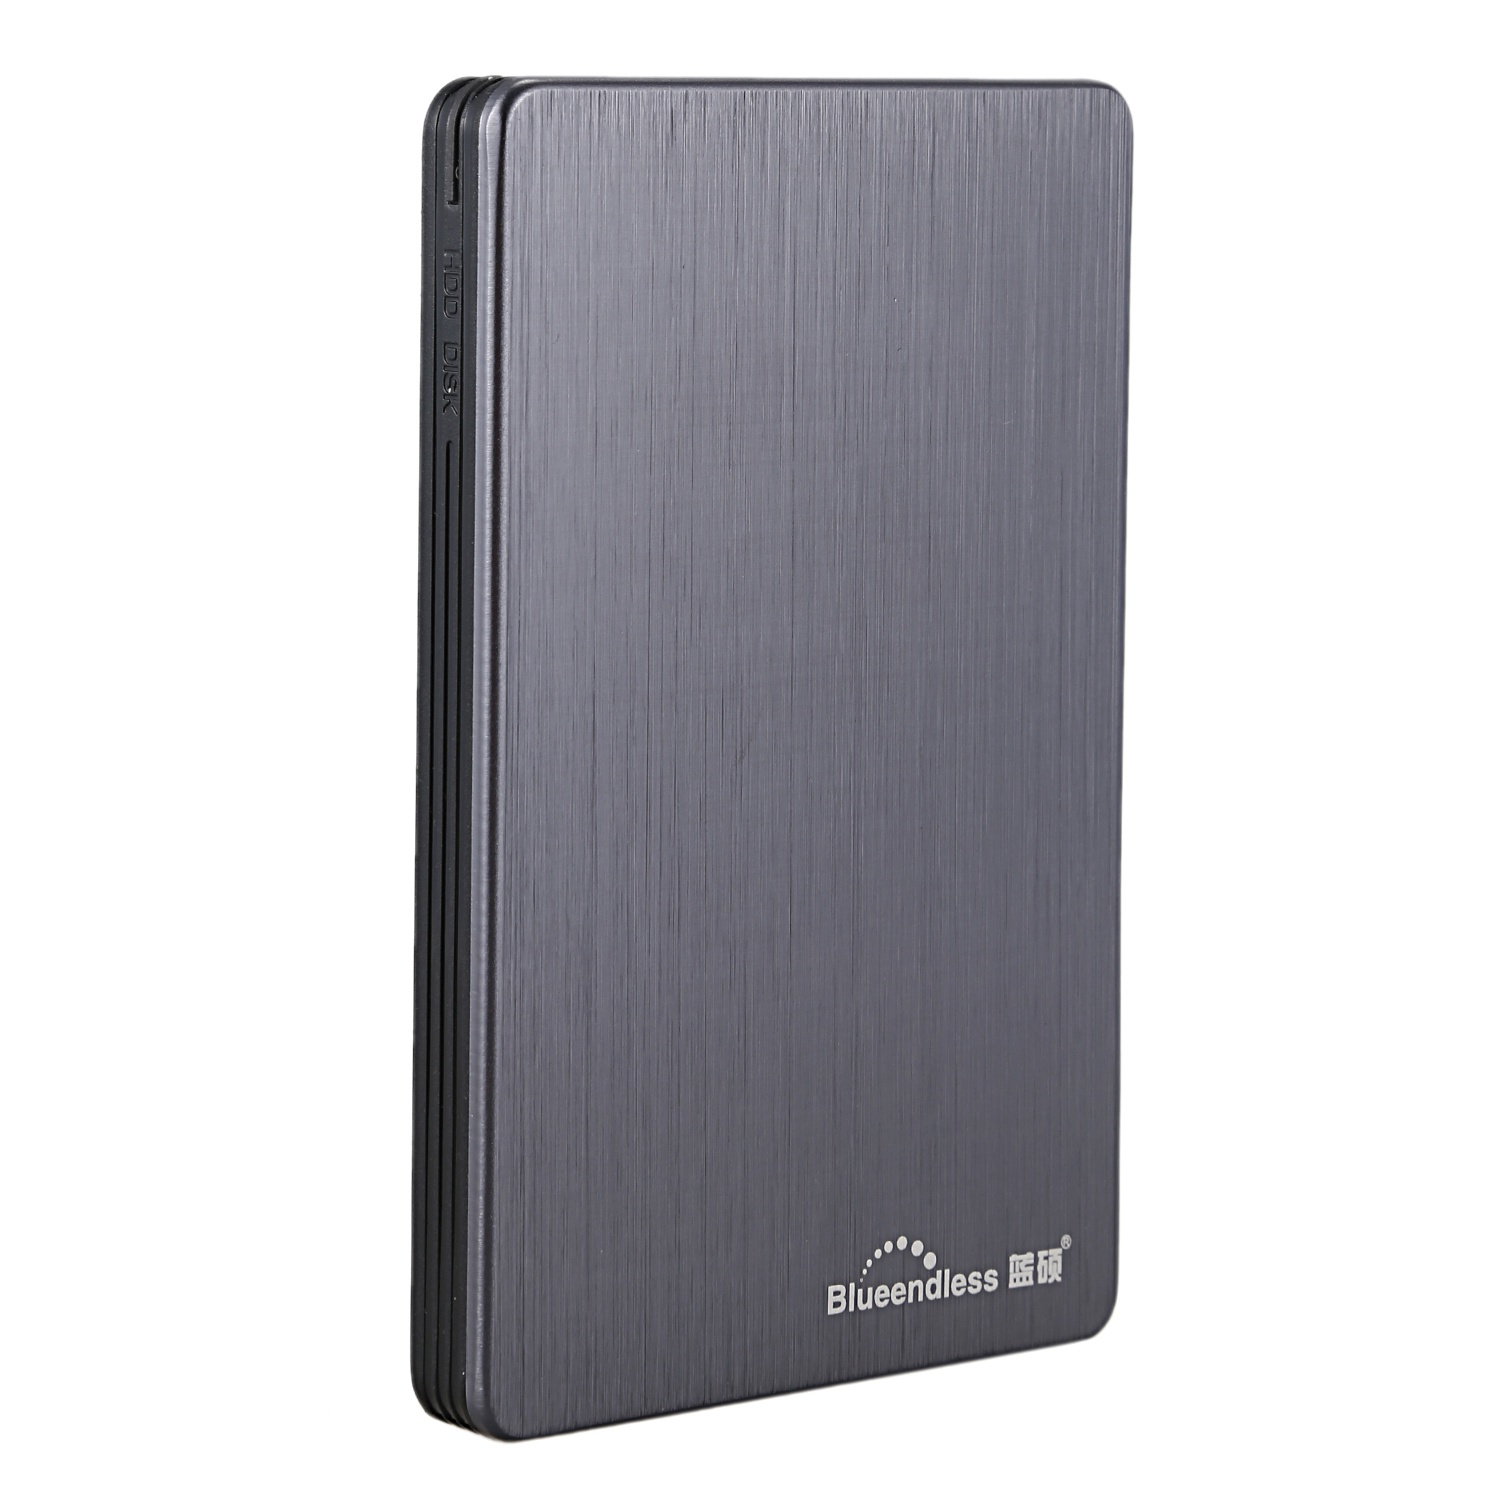 Blueendless Usb 3.0 Portable External Hard Drive Disk Hdd 2.5 Inch Externo Disco Hard Drive For Desktop Laptop